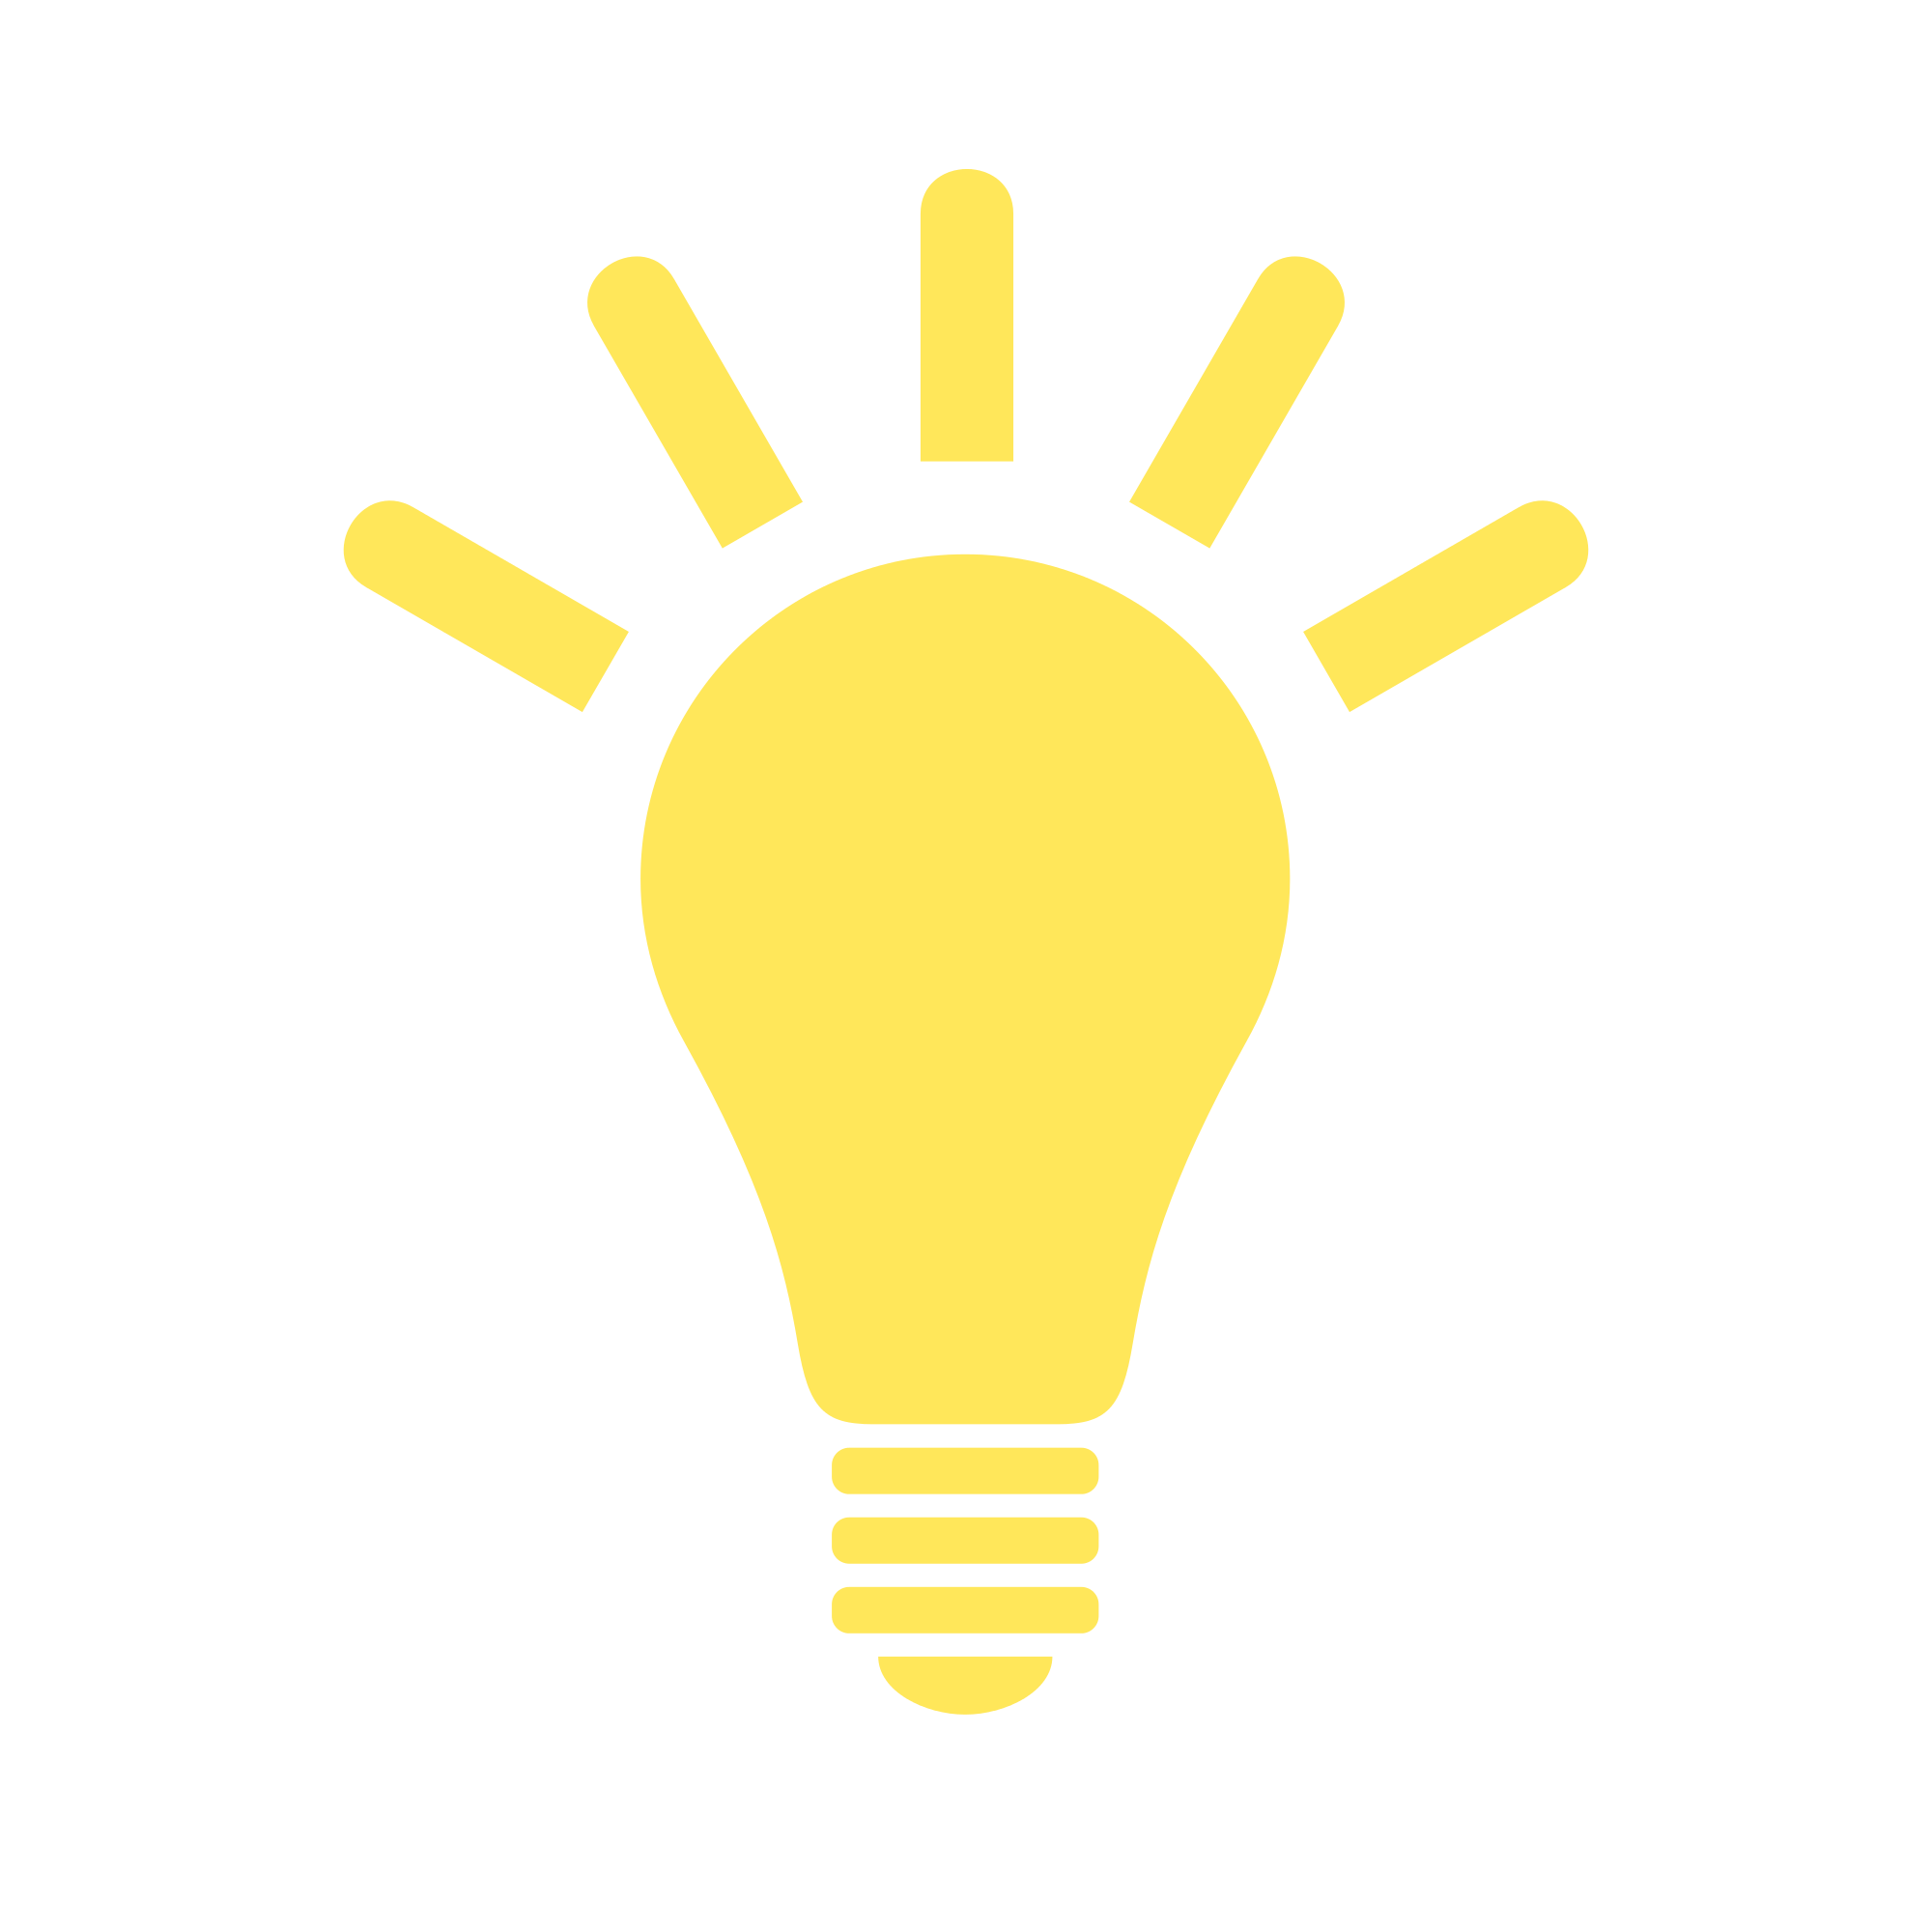 Lightbulb svg. File light bulb yellow